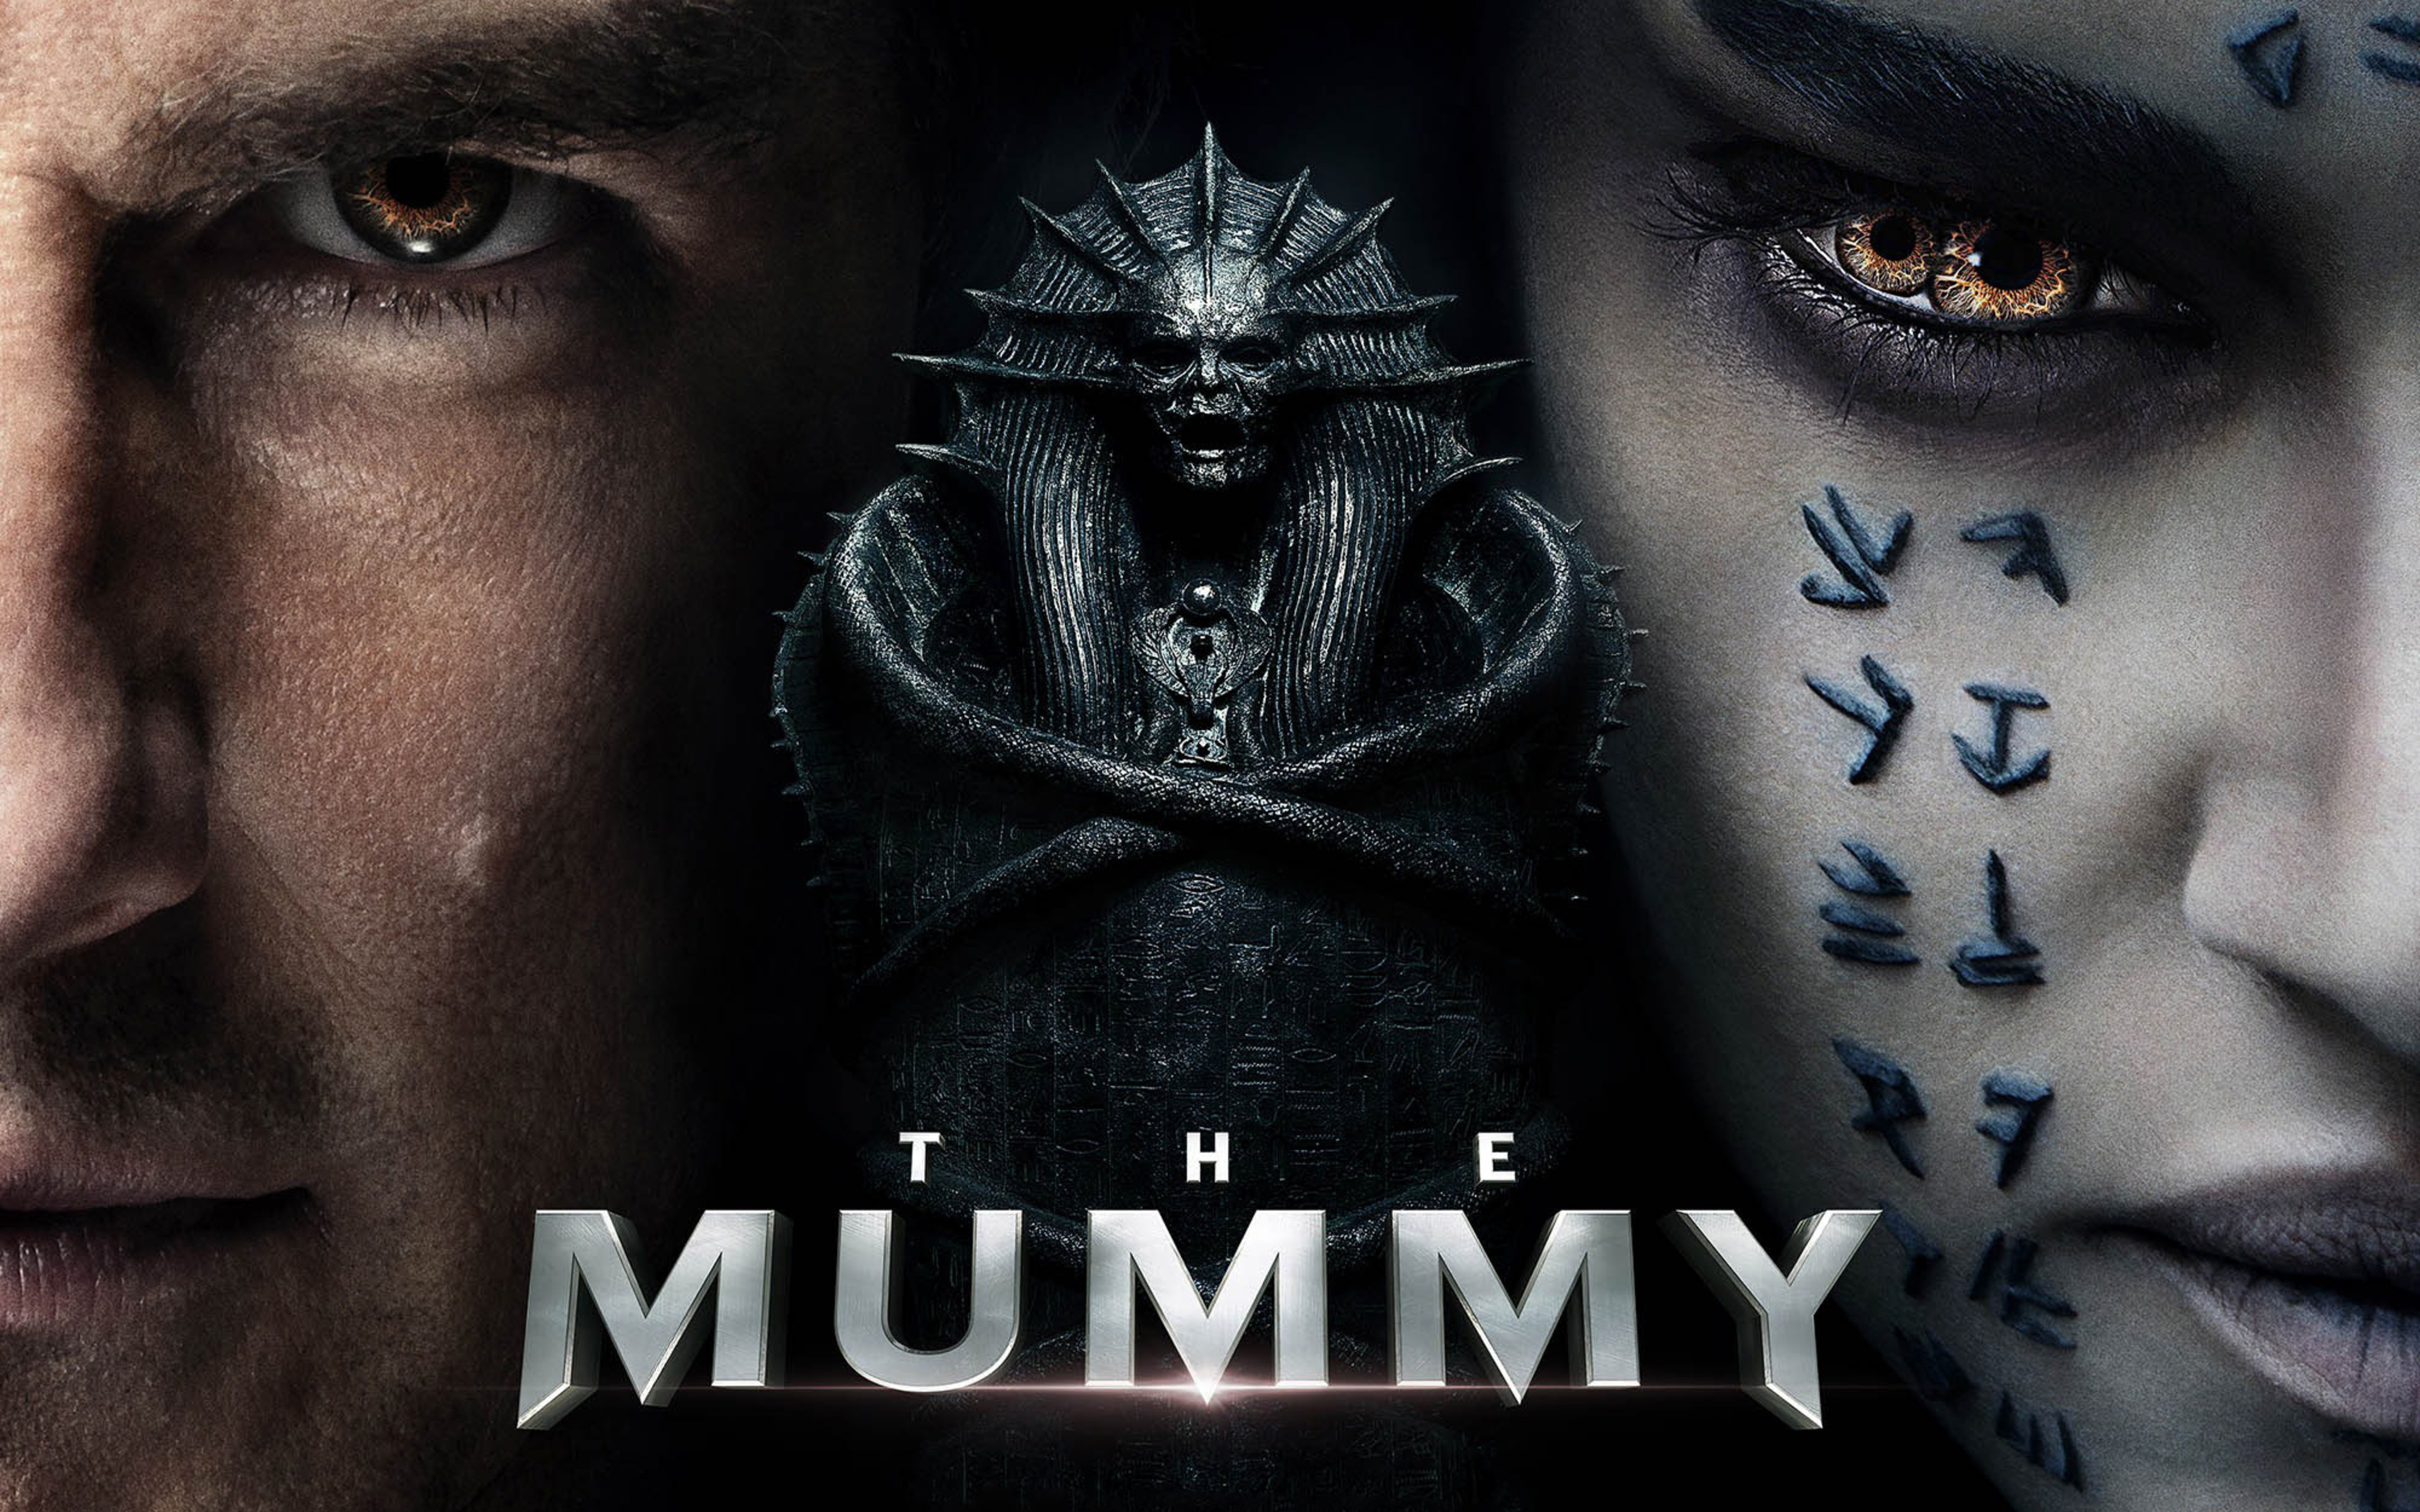 Wallpaper The Mummy 2017 Movies Hd Movies 4142: 3840x2400 The Mummy New Poster 4k HD 4k Wallpapers, Images